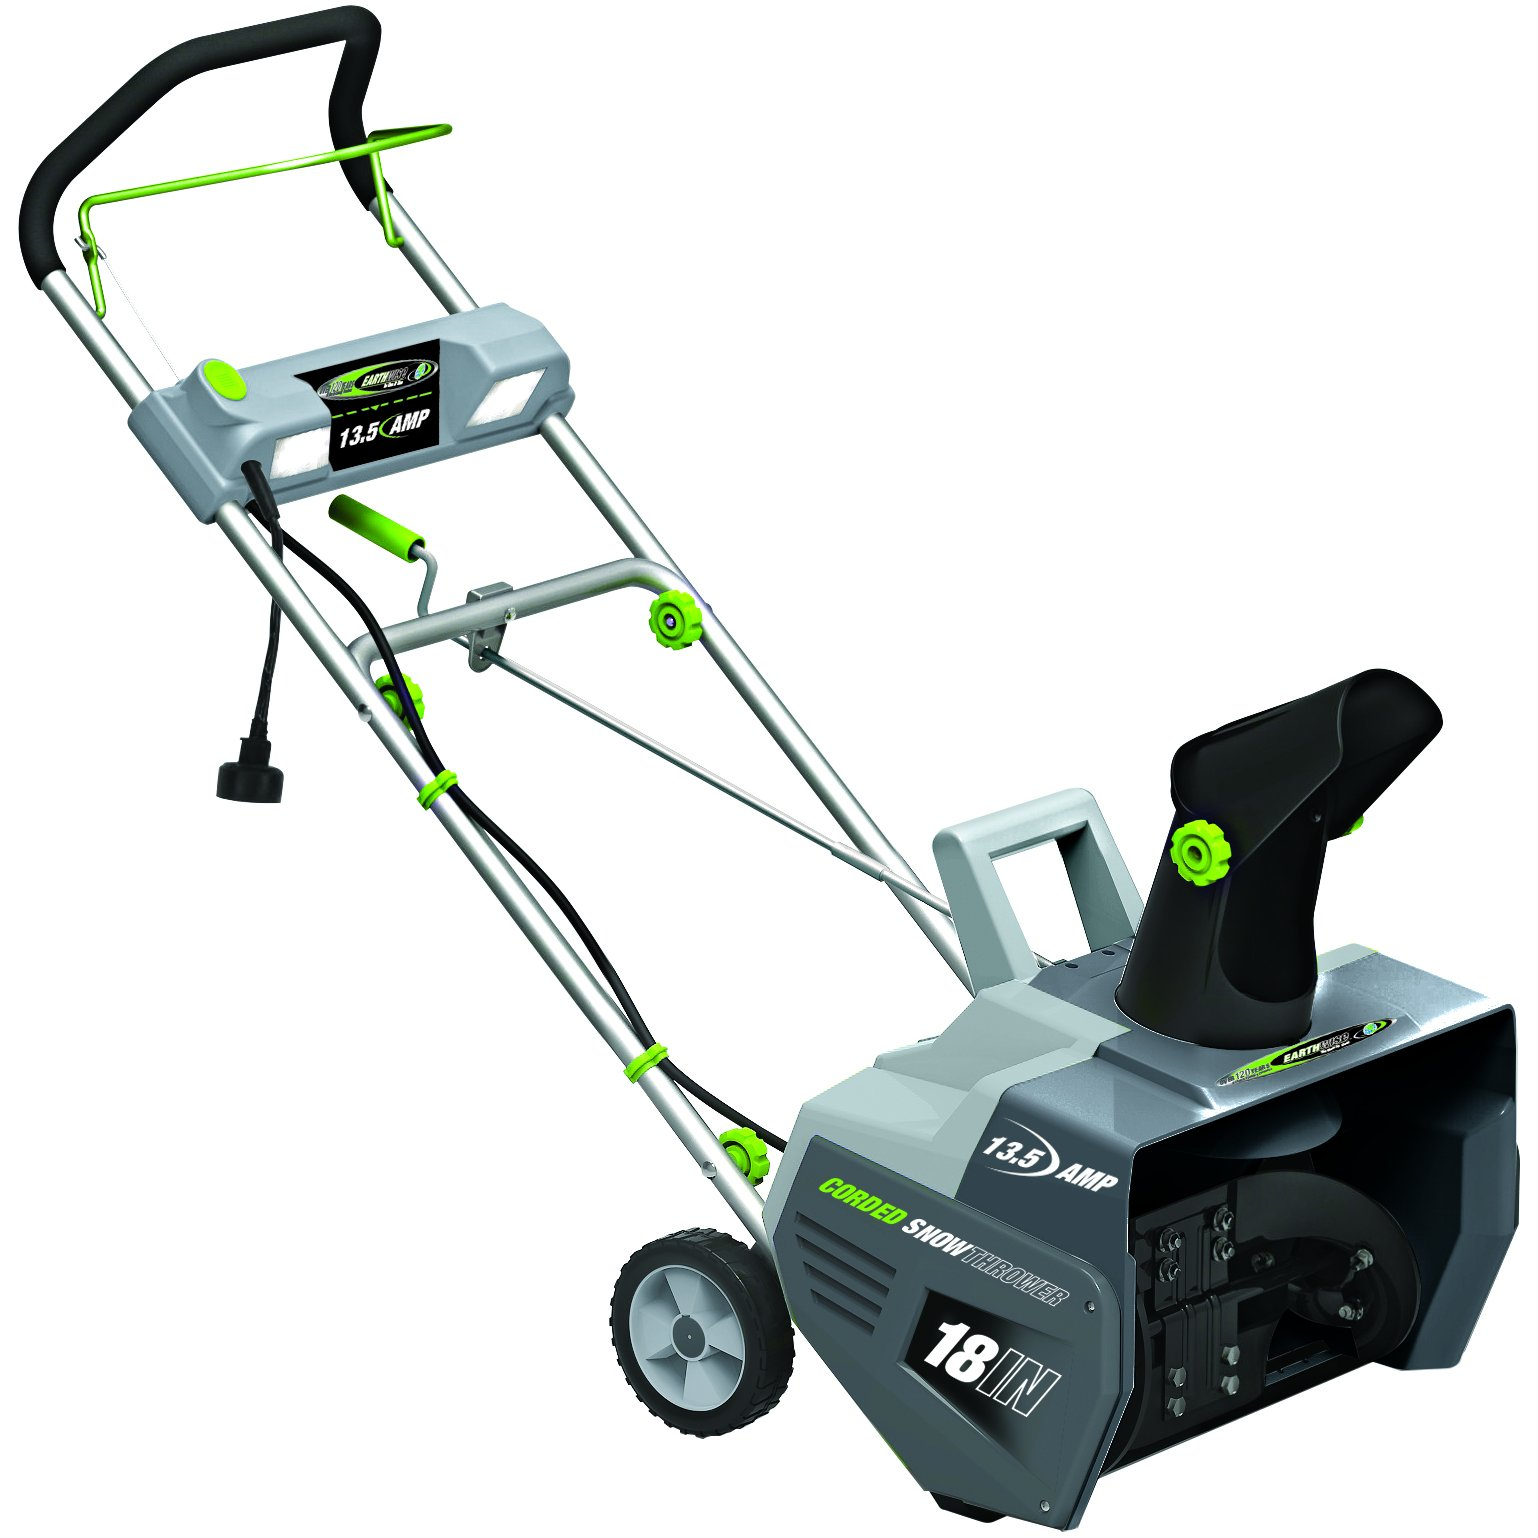 Earthwise SN72018 Electric Corded 13.5 Amp Snow Thrower, 18'' Width, LED Lights, 700lbs/Minute by Earthwise